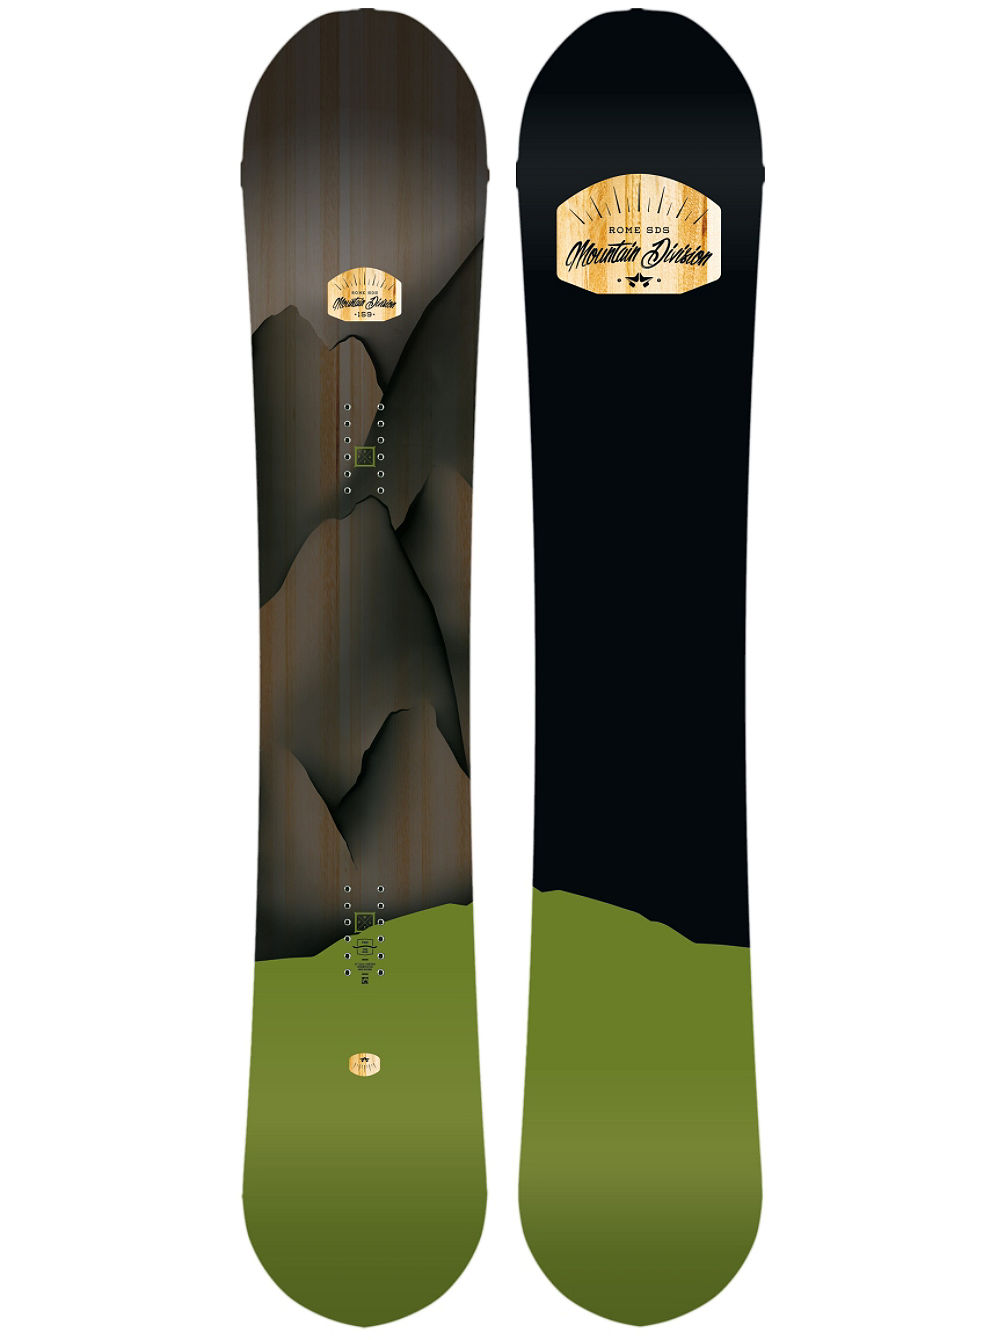 Mountain Division 163 Snowboard